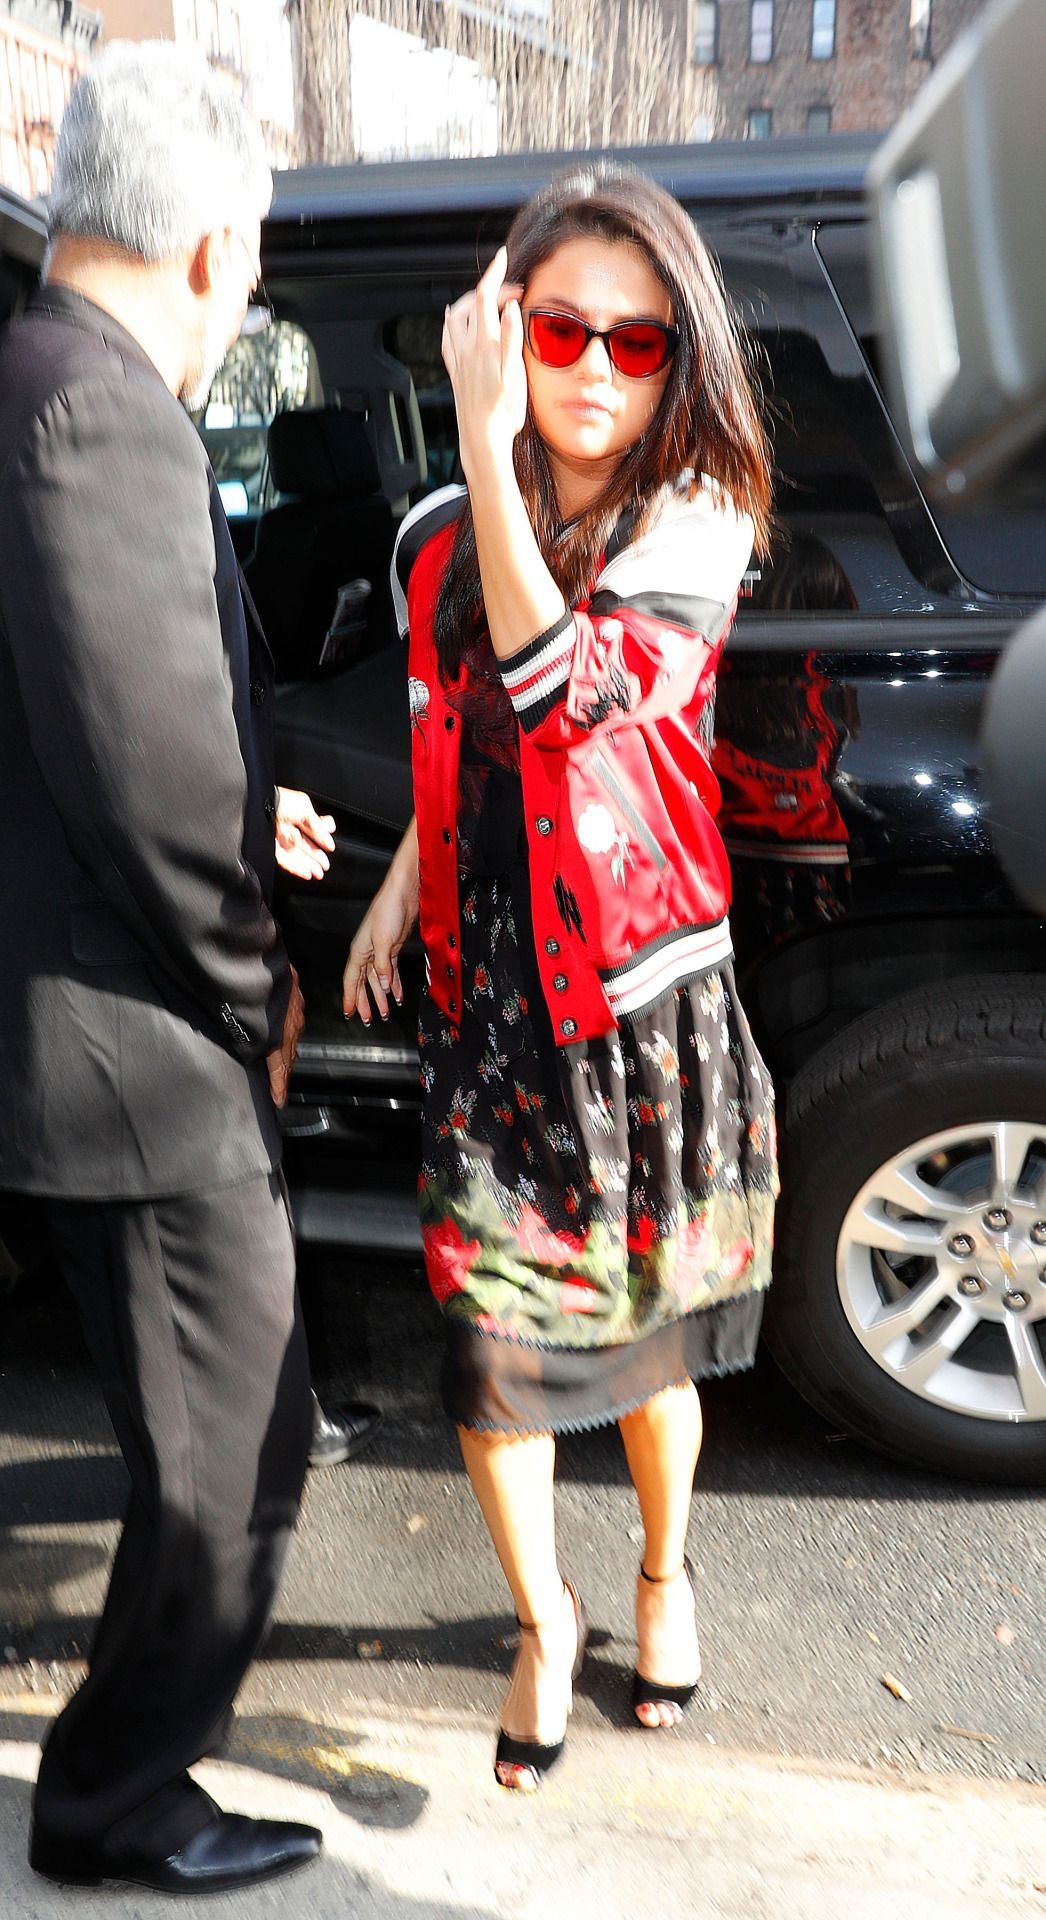 """February 8: [More] Selena arriving at a press event for the Netflix Series """"13 Reasons Why"""" in New York, NY [HQs]"""